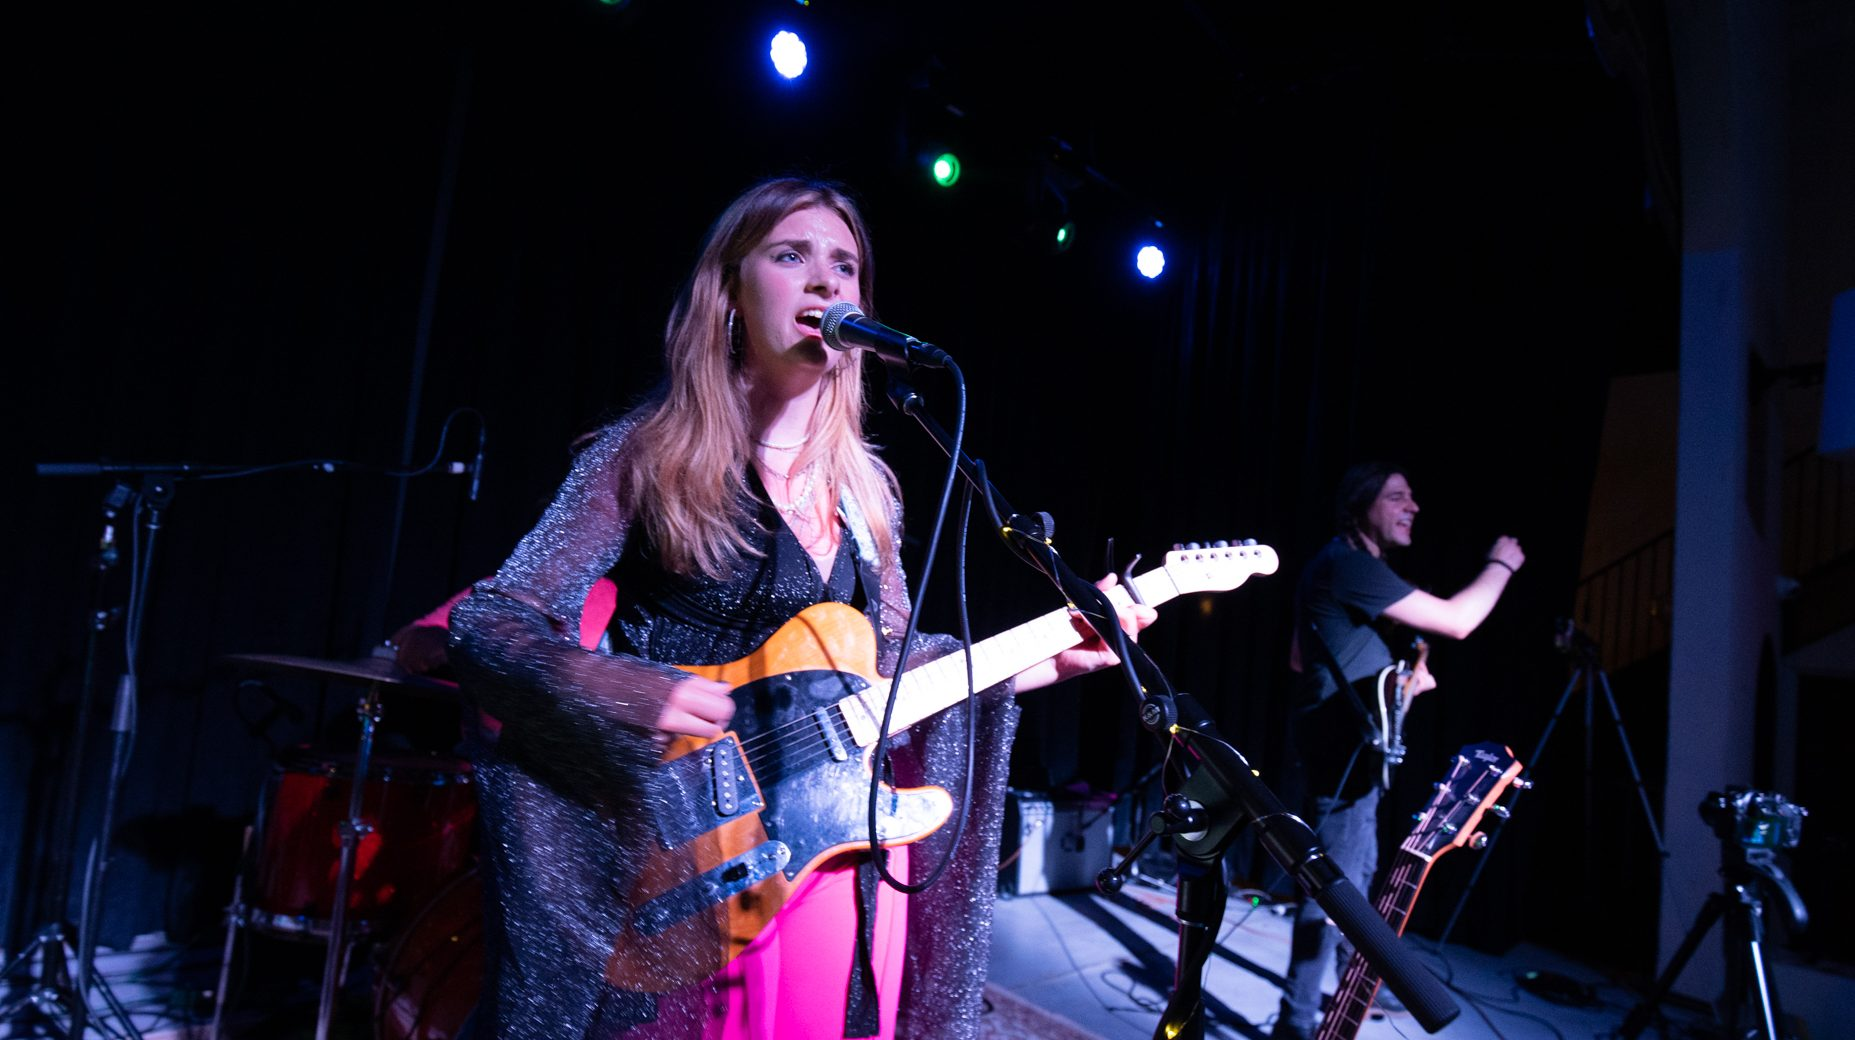 GALLERY: Sydney Worthley Performs Two Rocking Sets at Lark Hall in Albany, NY